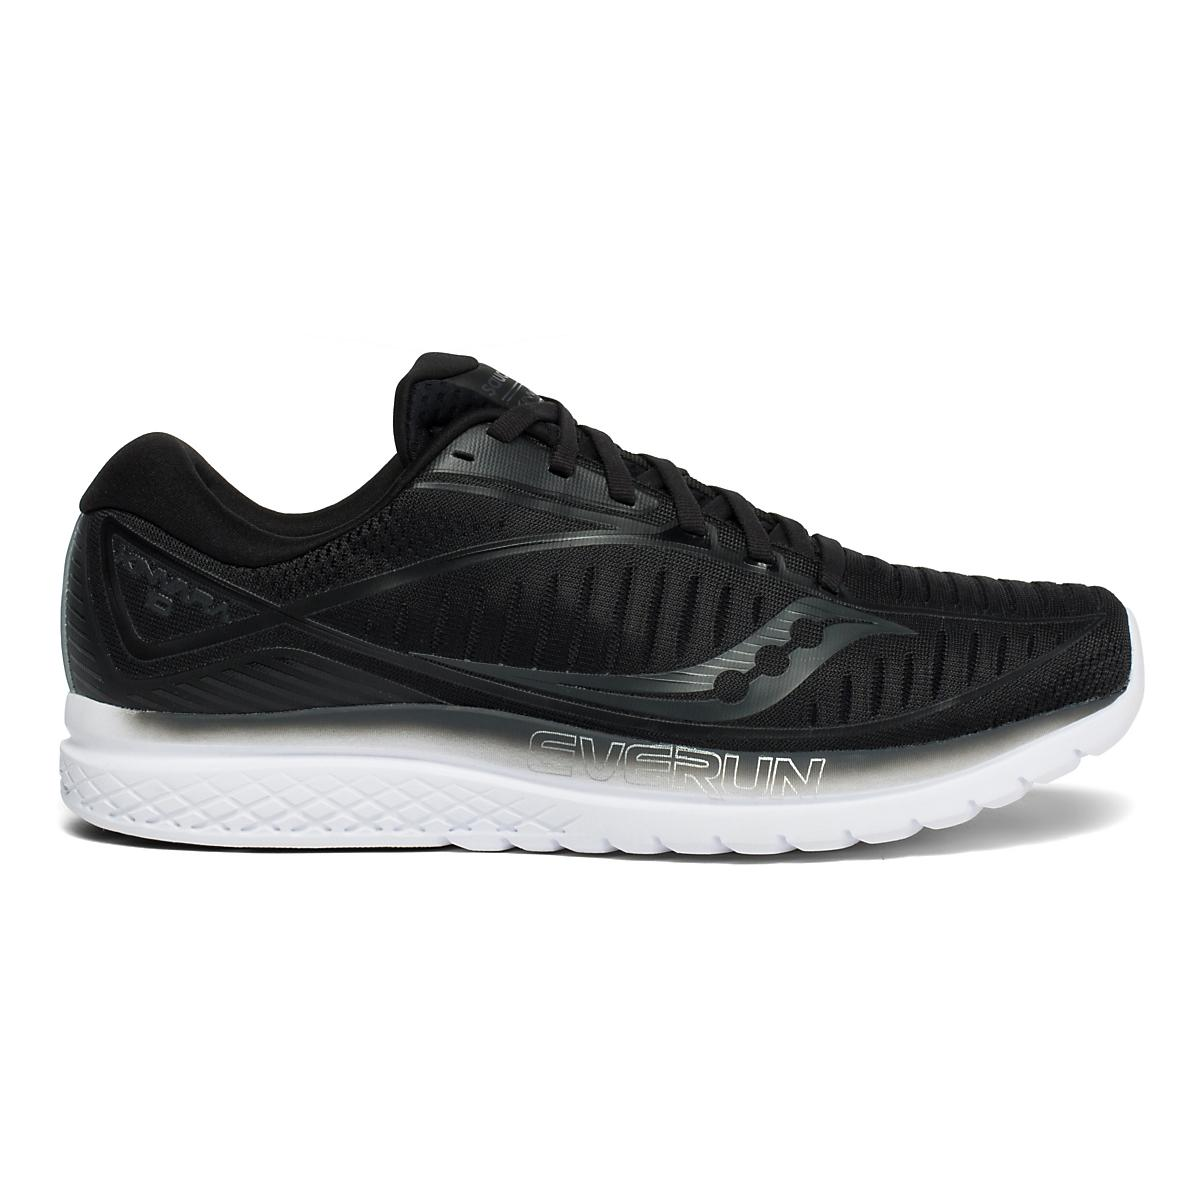 4a4bc15f Mens Saucony Kinvara 10 Running Shoe at Road Runner Sports